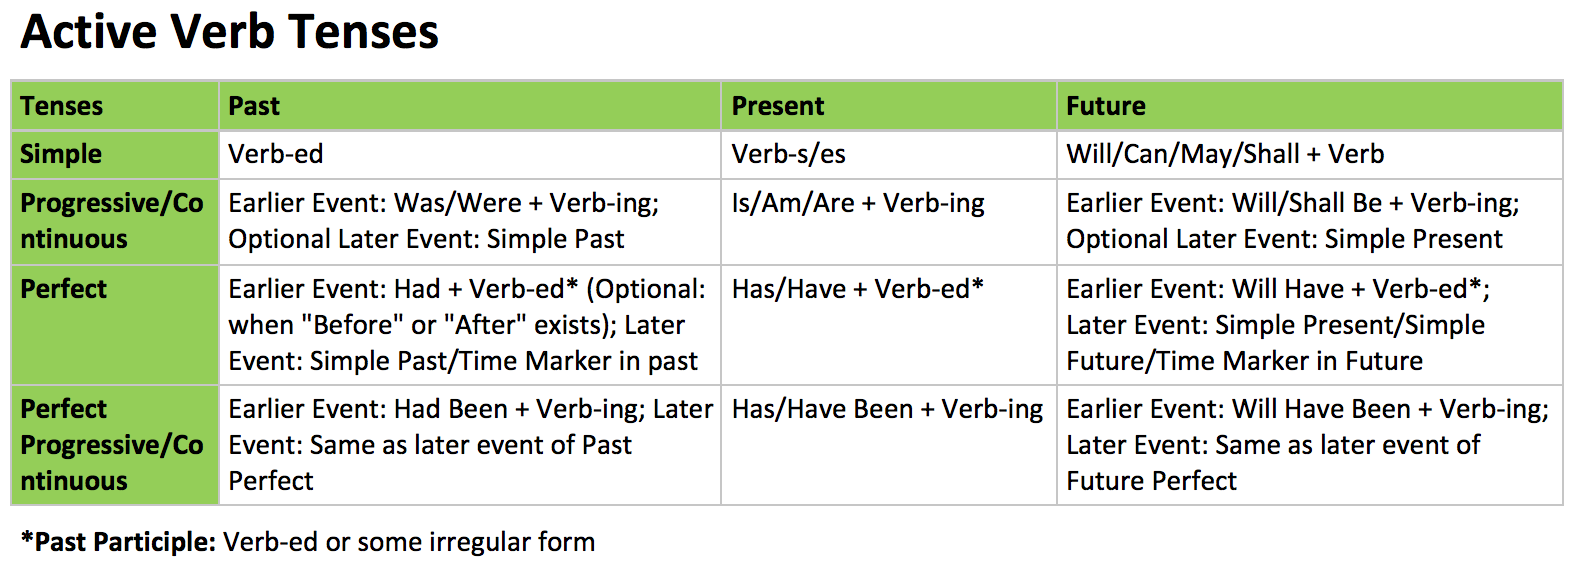 Active Verb Tenses.png